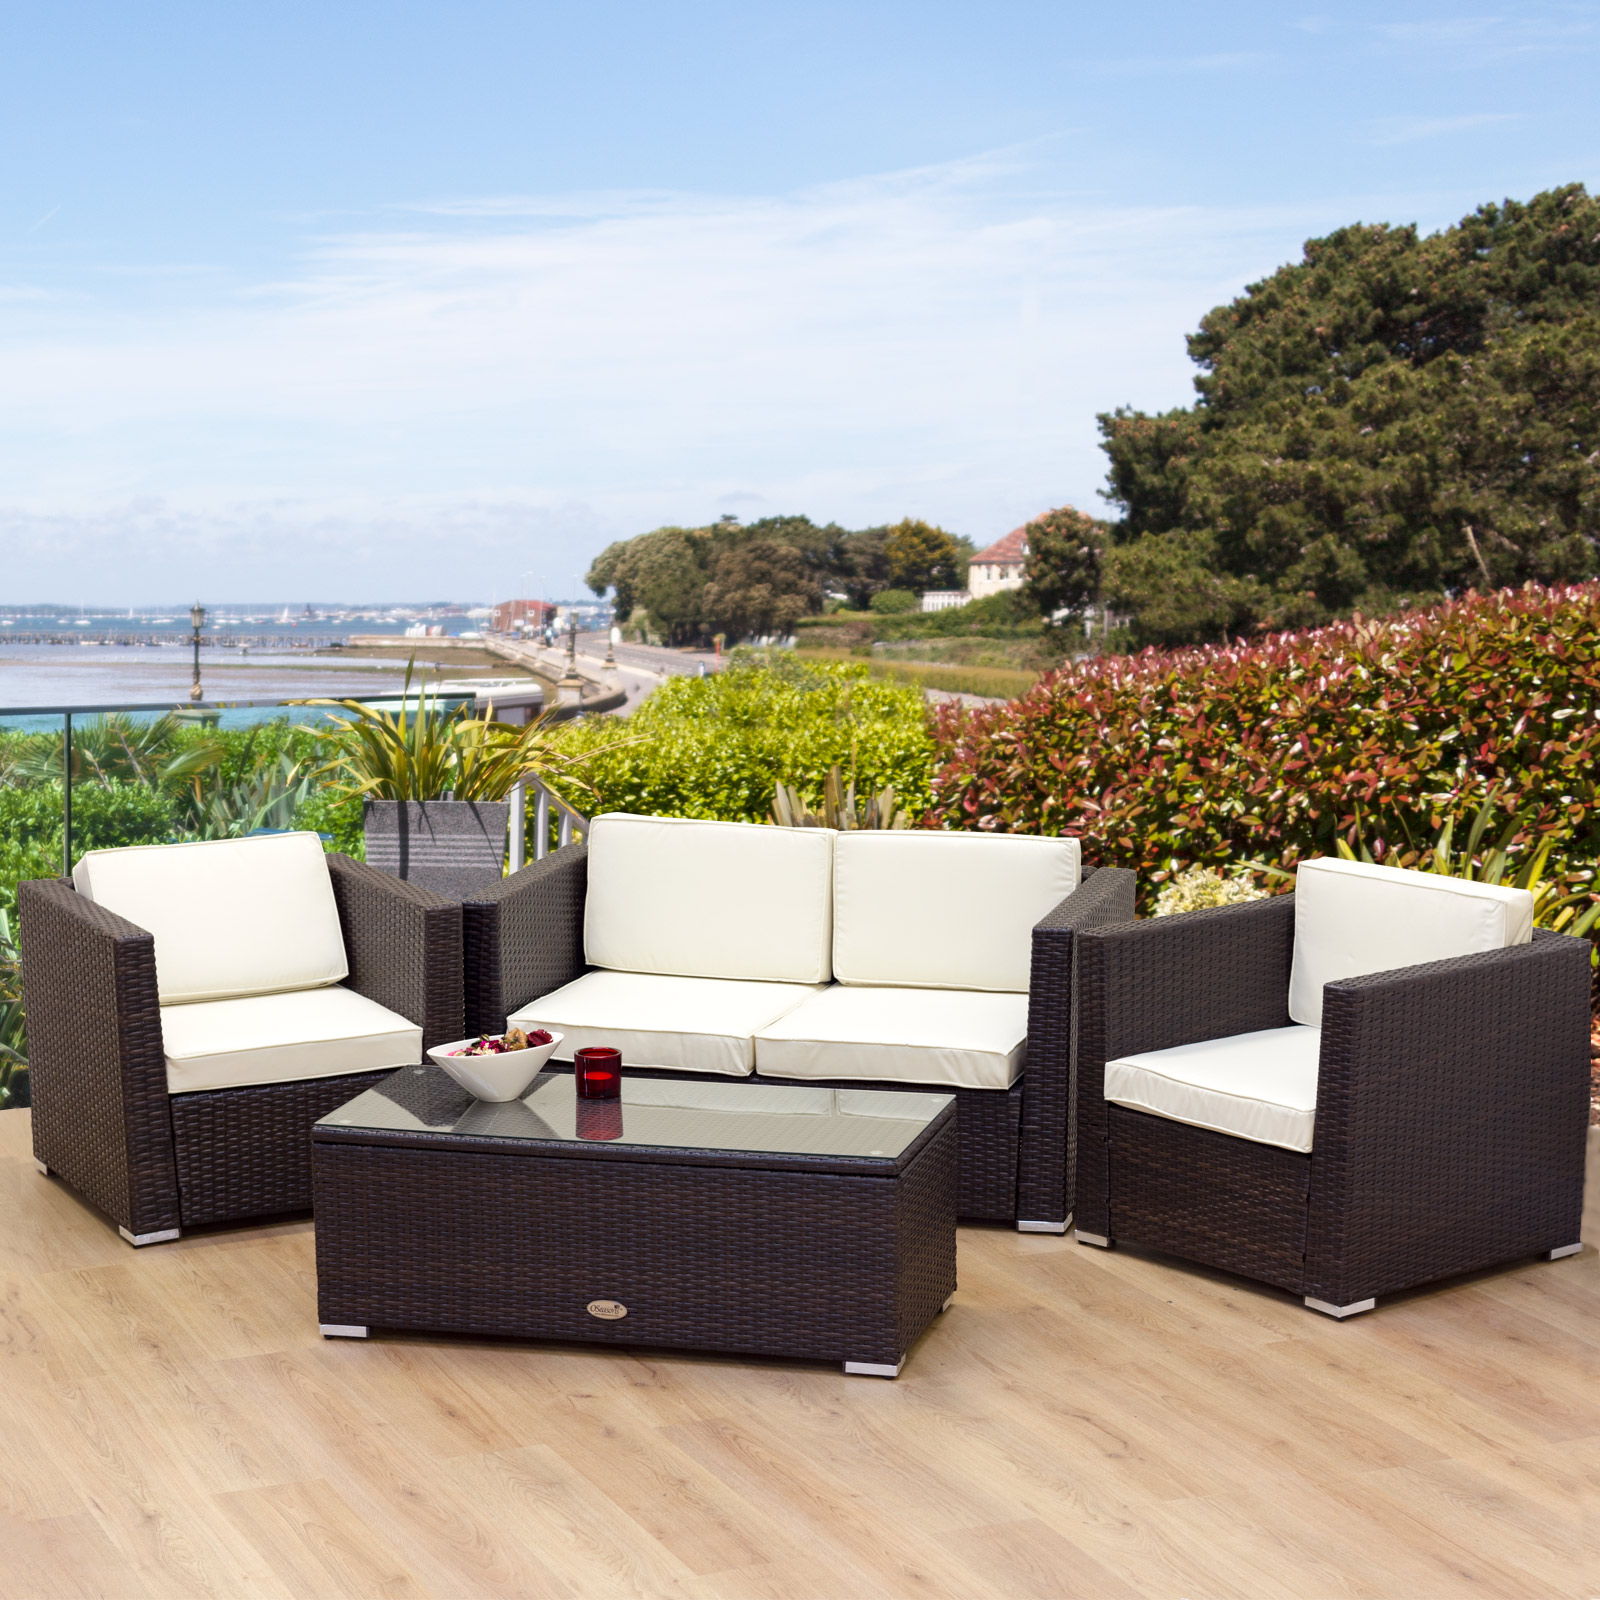 rattan garden furniture shop now OPFVTAL